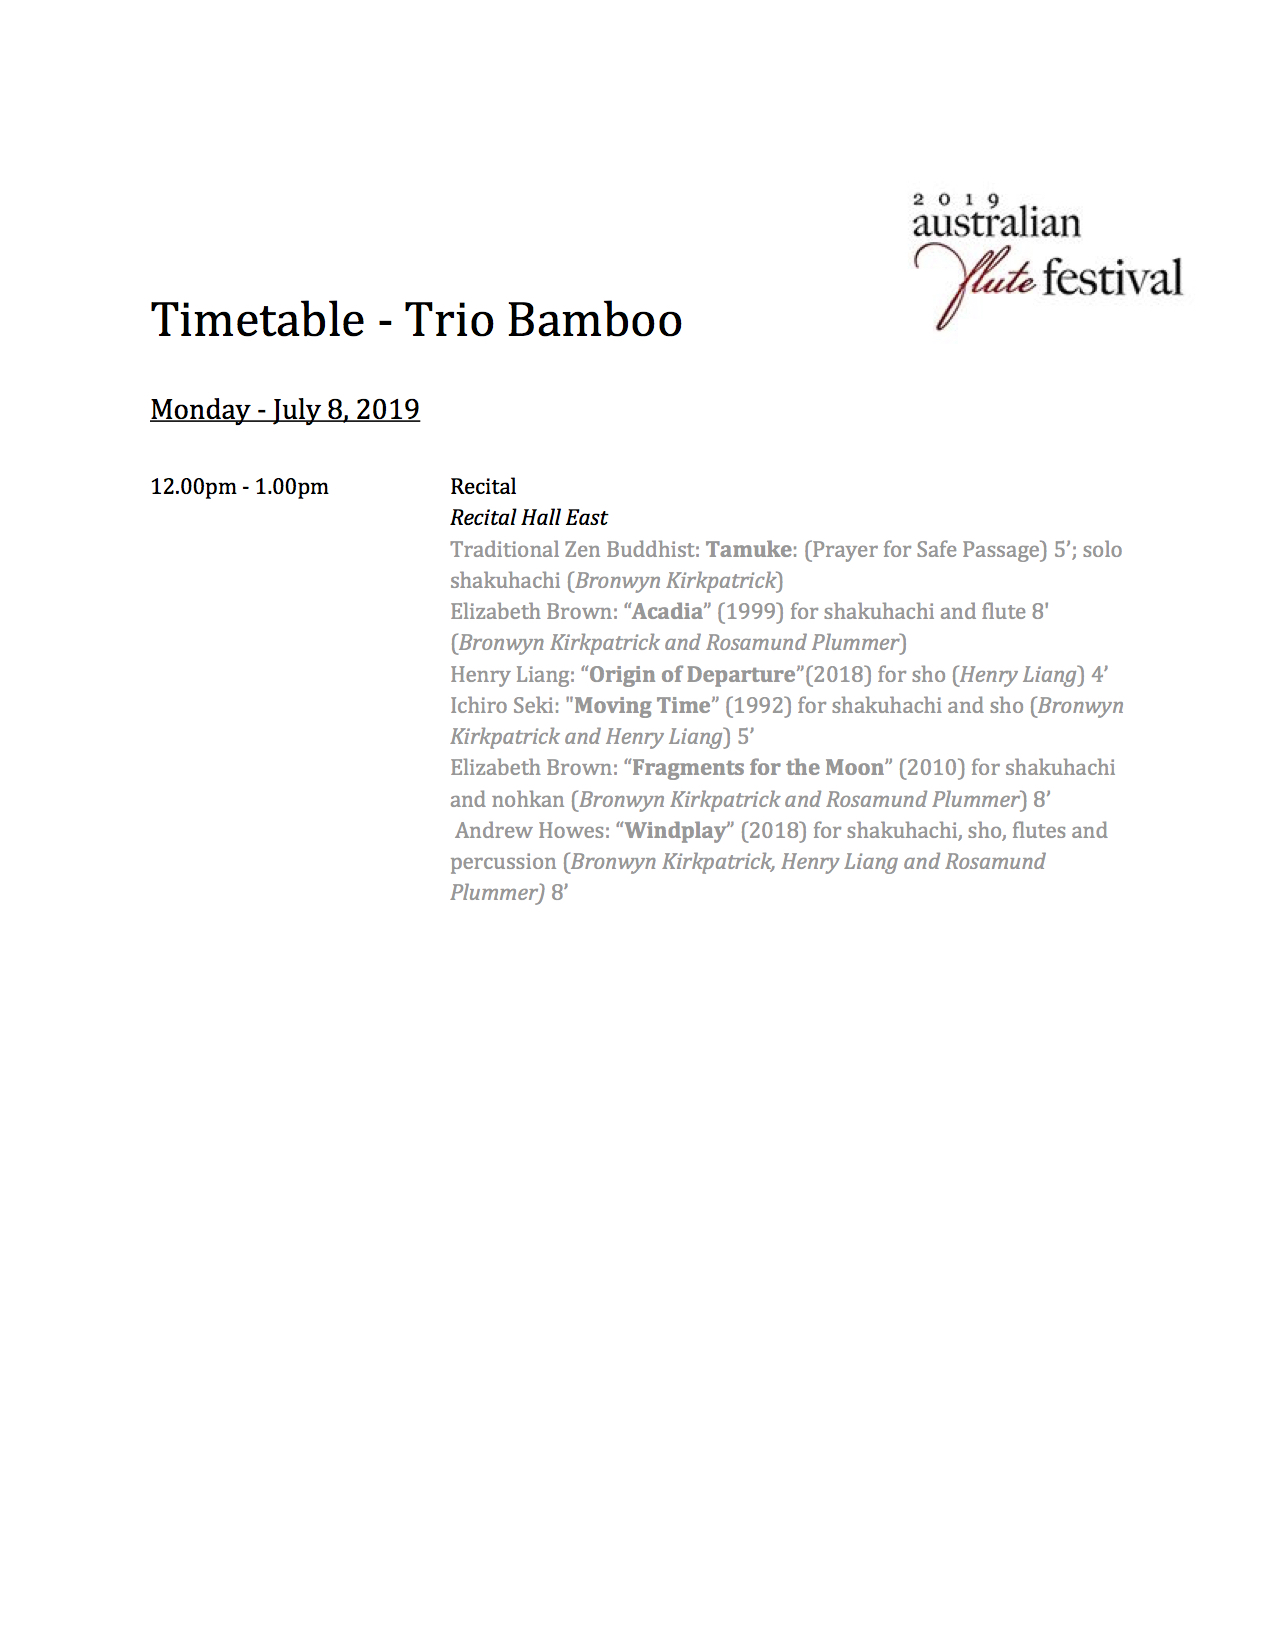 Timetable - Trio Bamboo